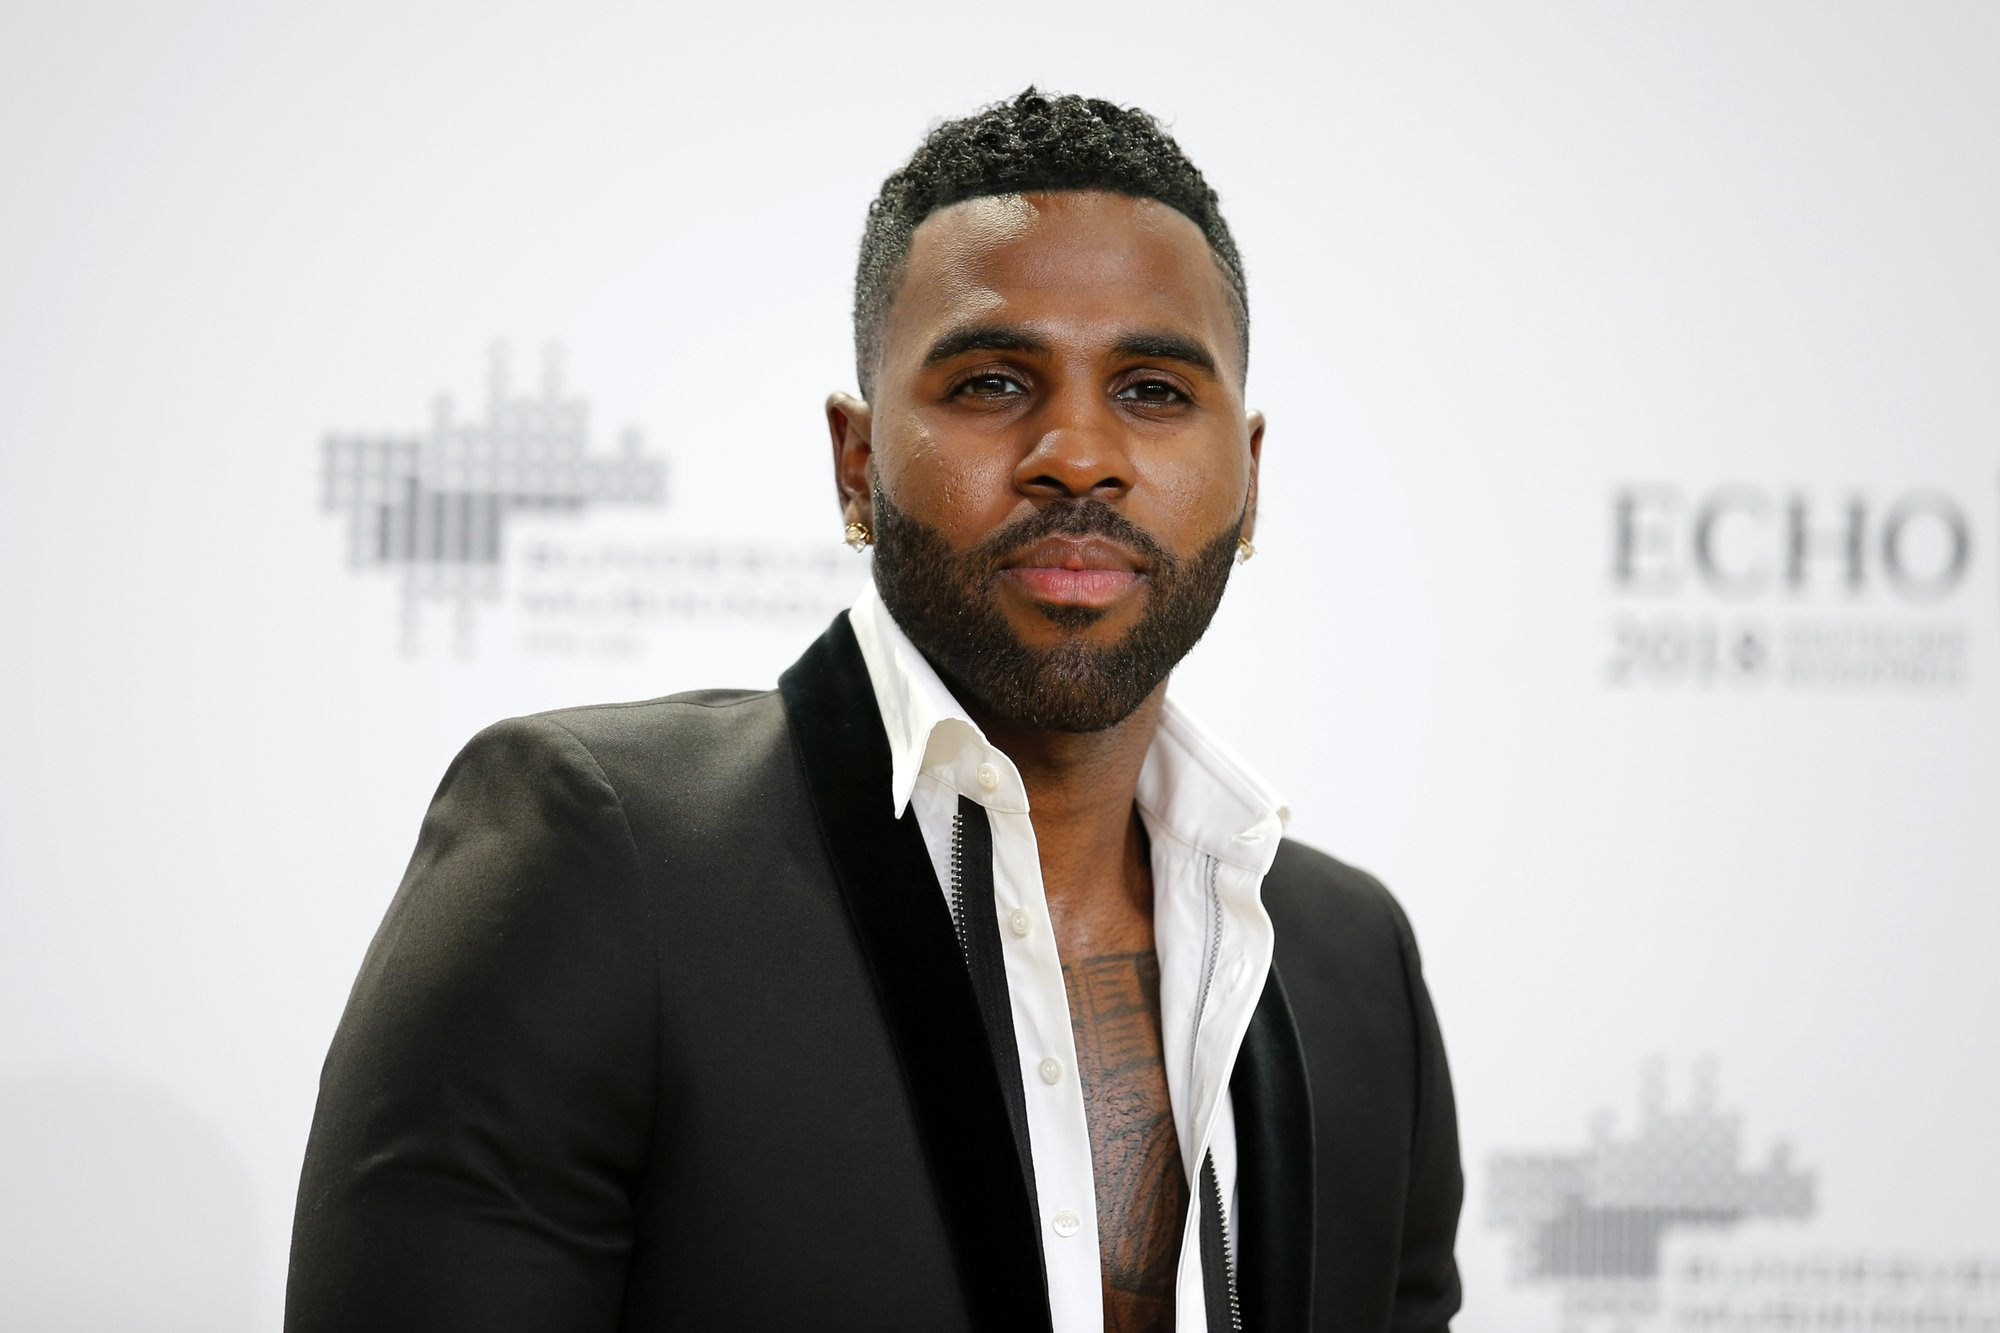 Derulo reaches out to K-pop with 'Let's Shut Up & Dance'